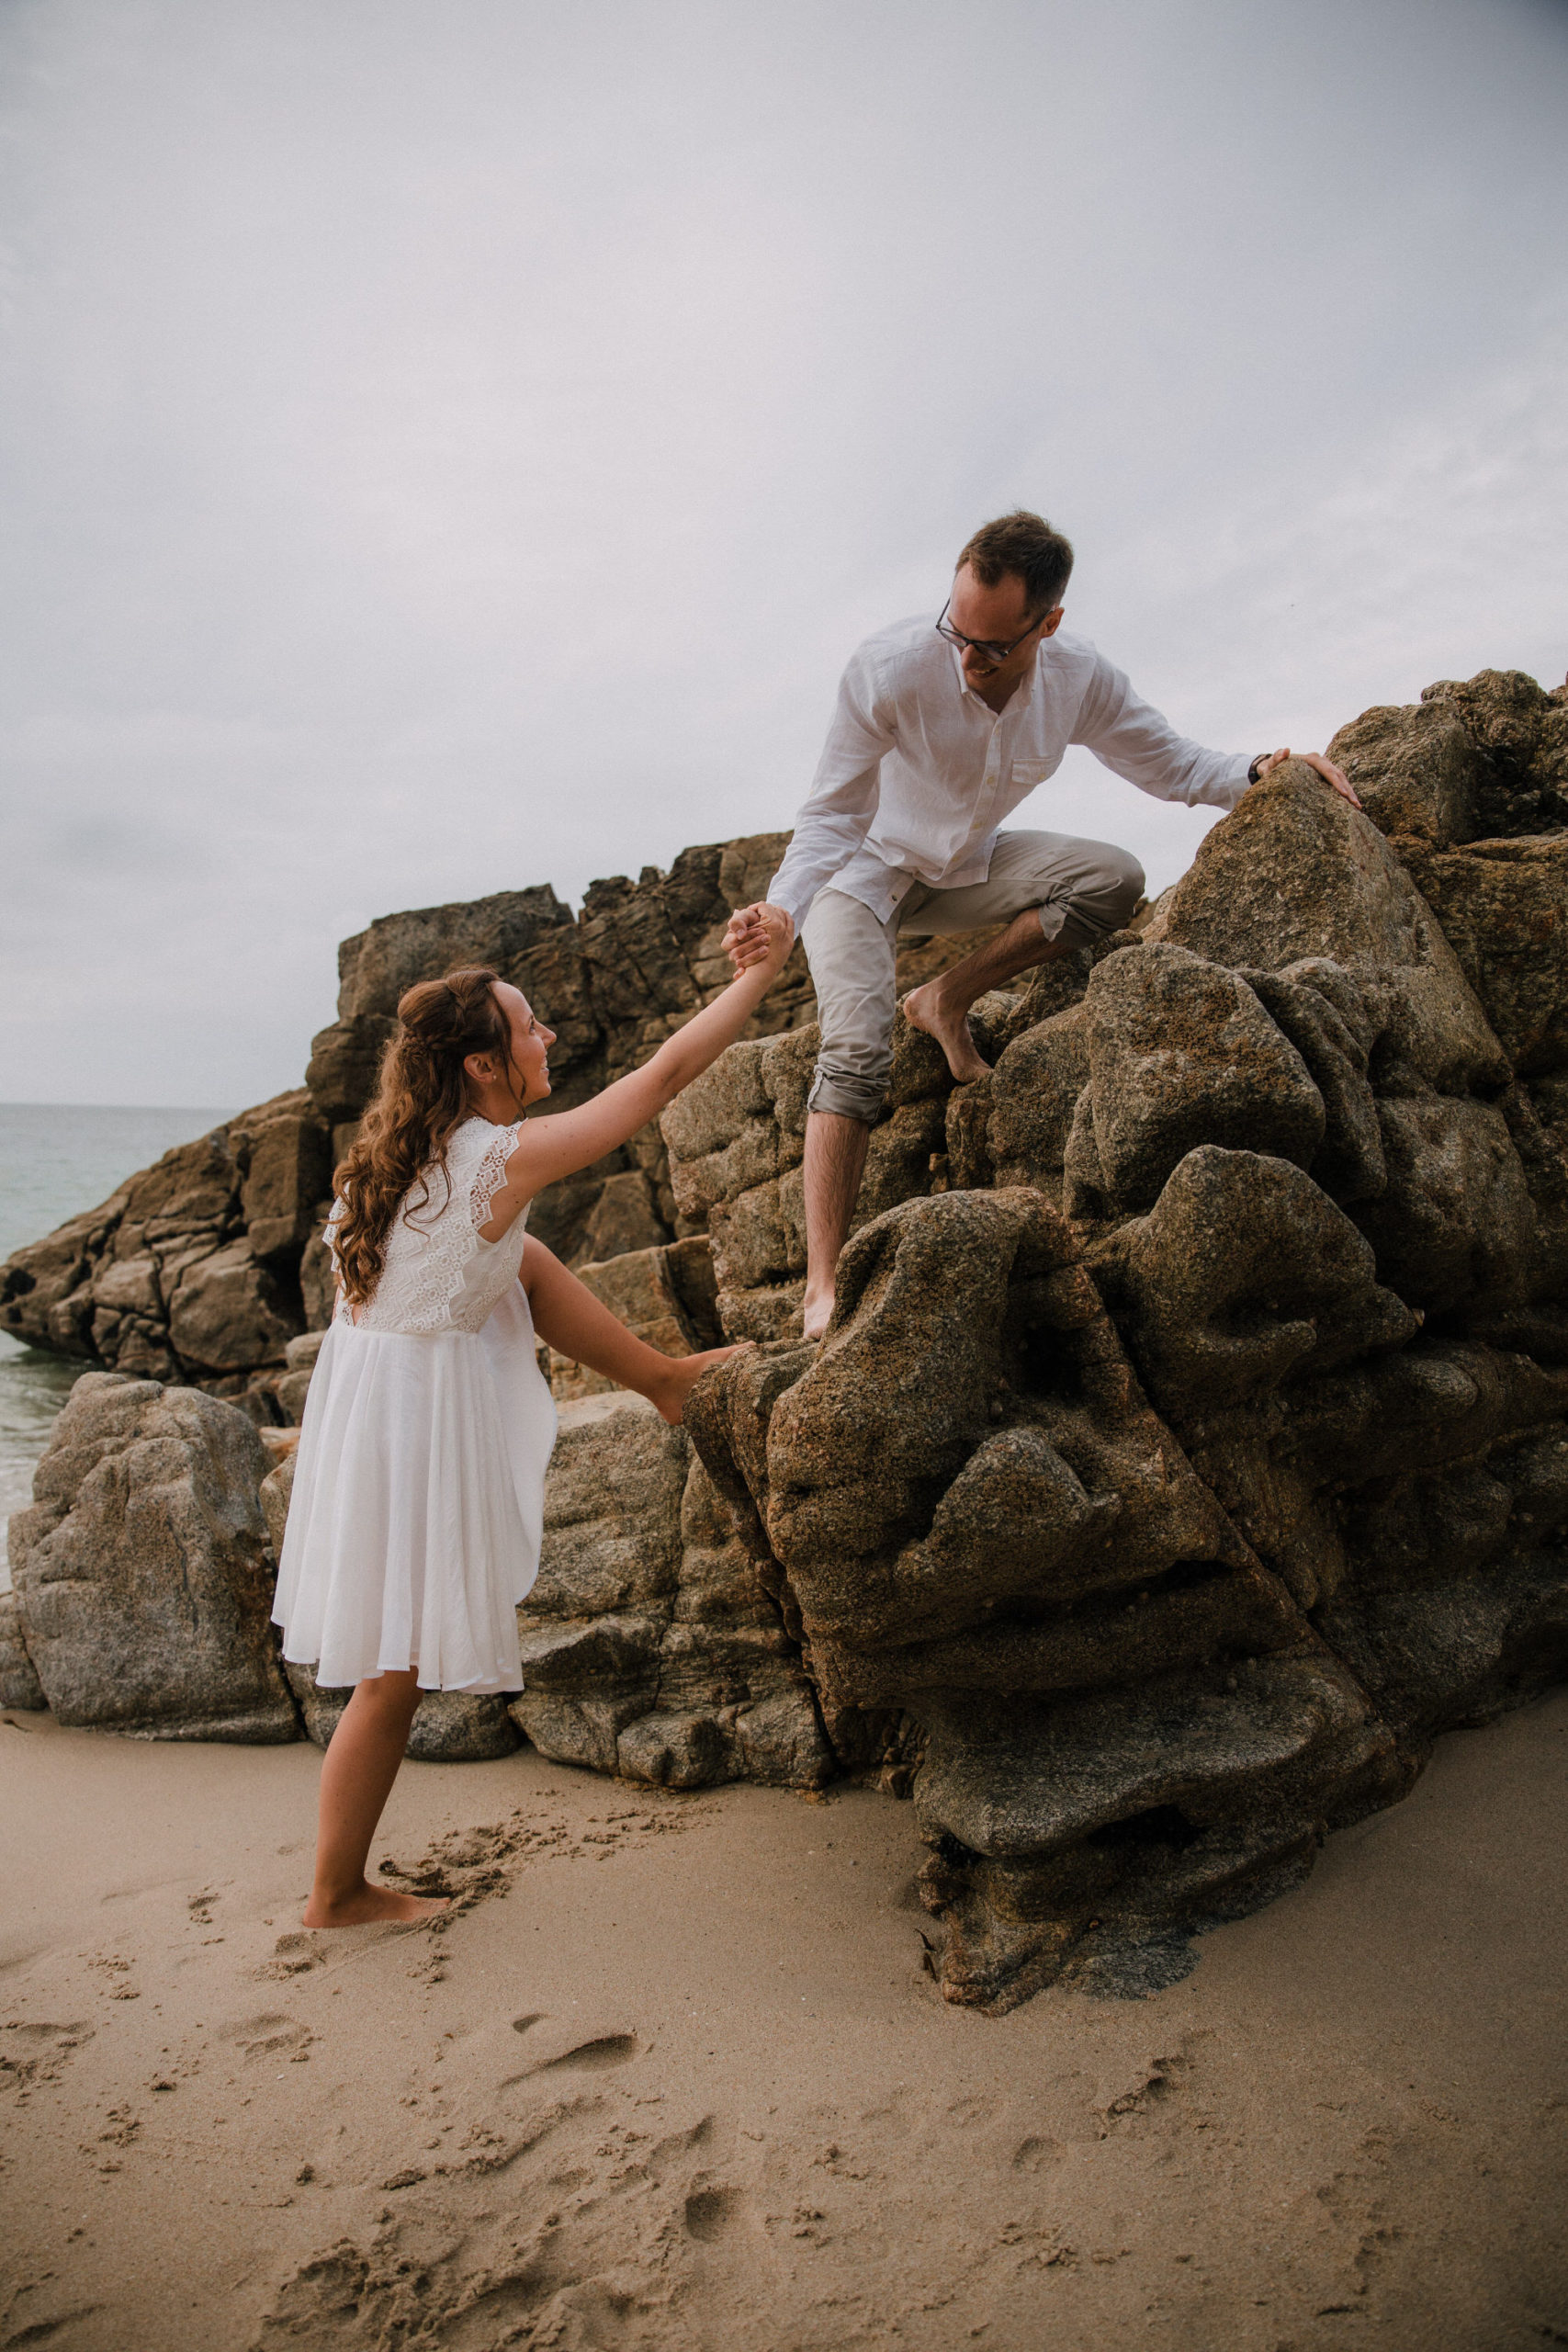 Save the date plage bord de mer Brest photo de mariage Bretagne